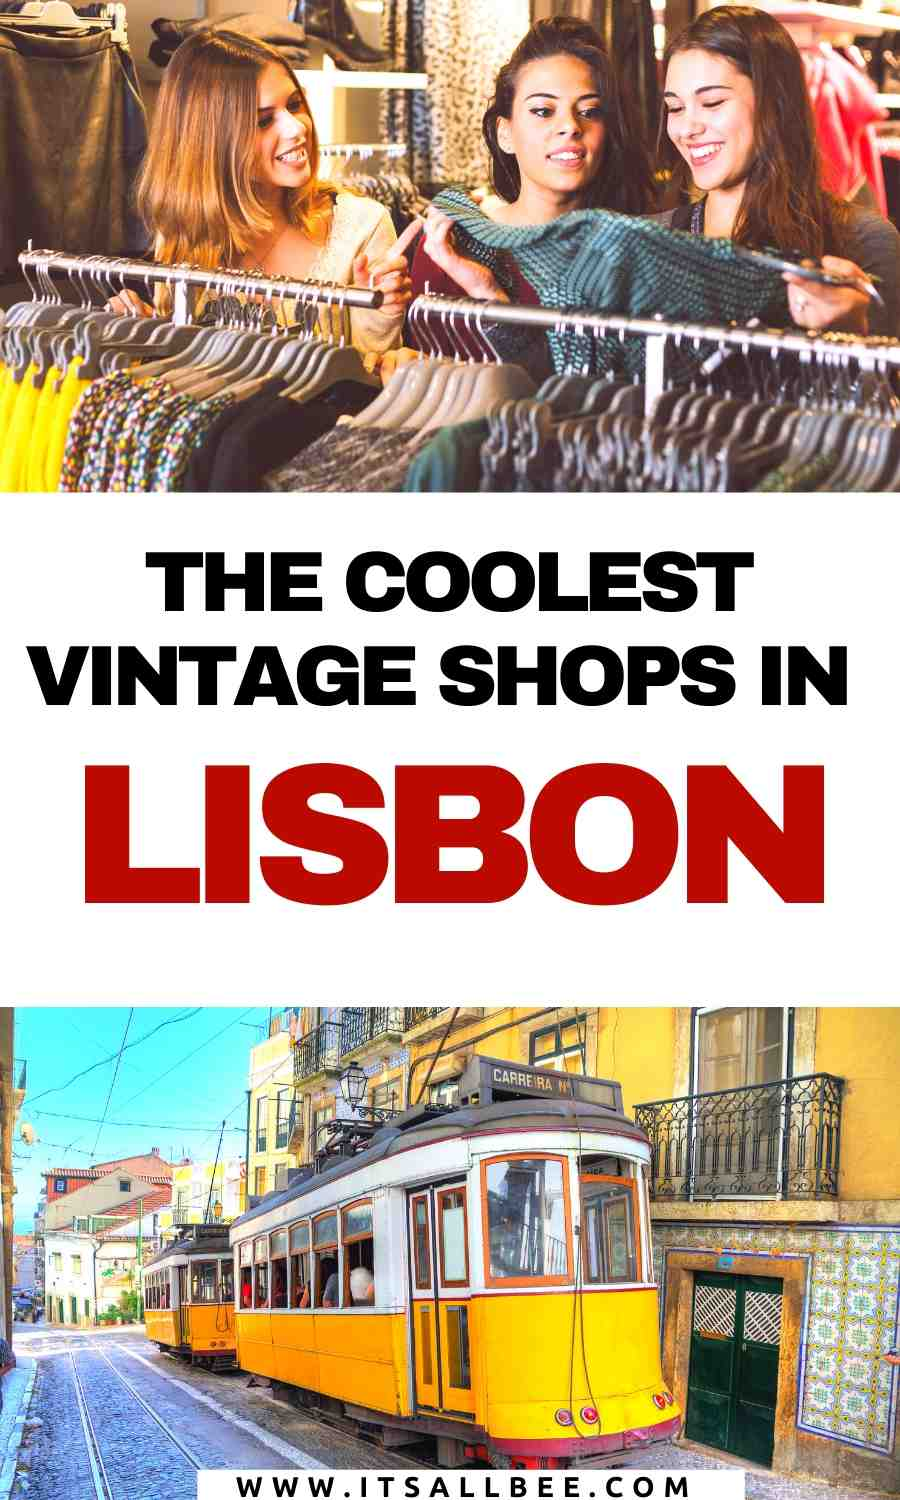 hrift stores lisbon Portugal | second hand clothes lisbon | coolest shops in lisbon